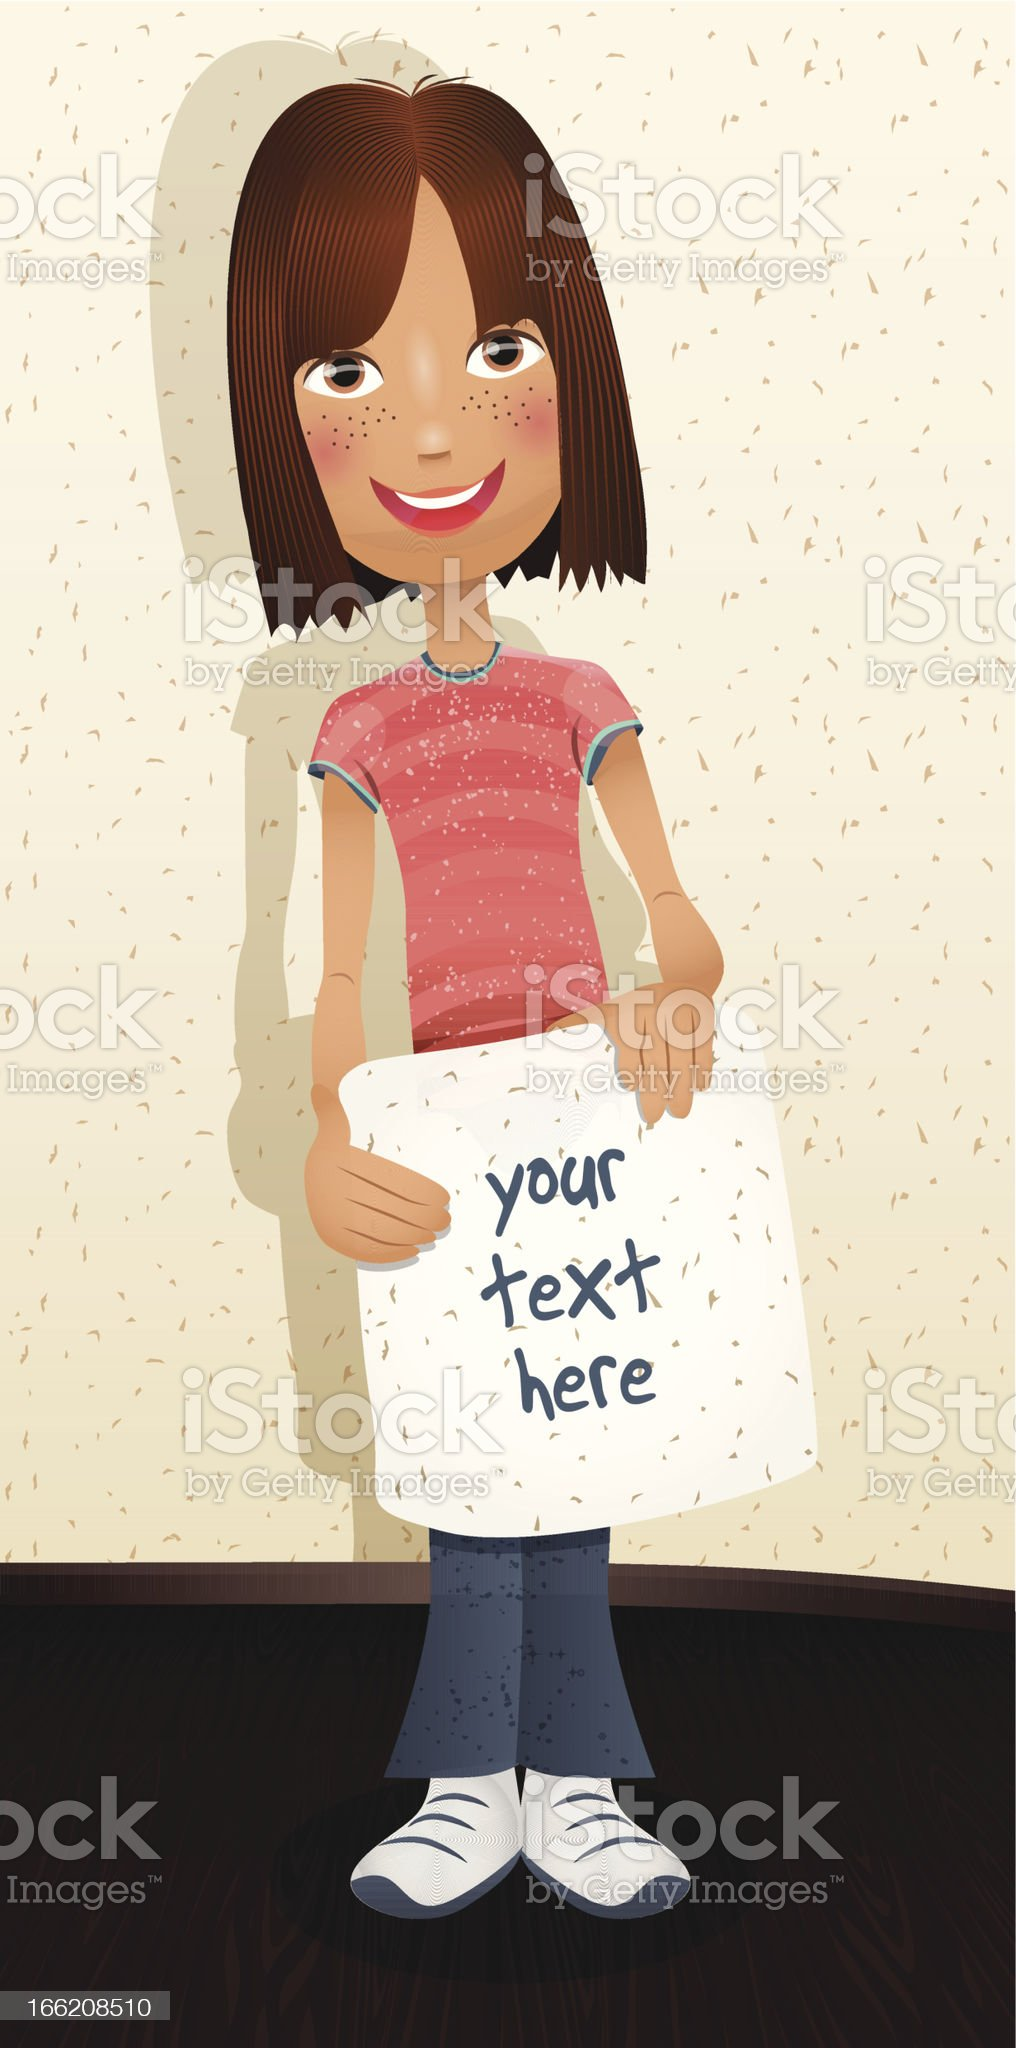 Cute girl and banner royalty-free stock vector art